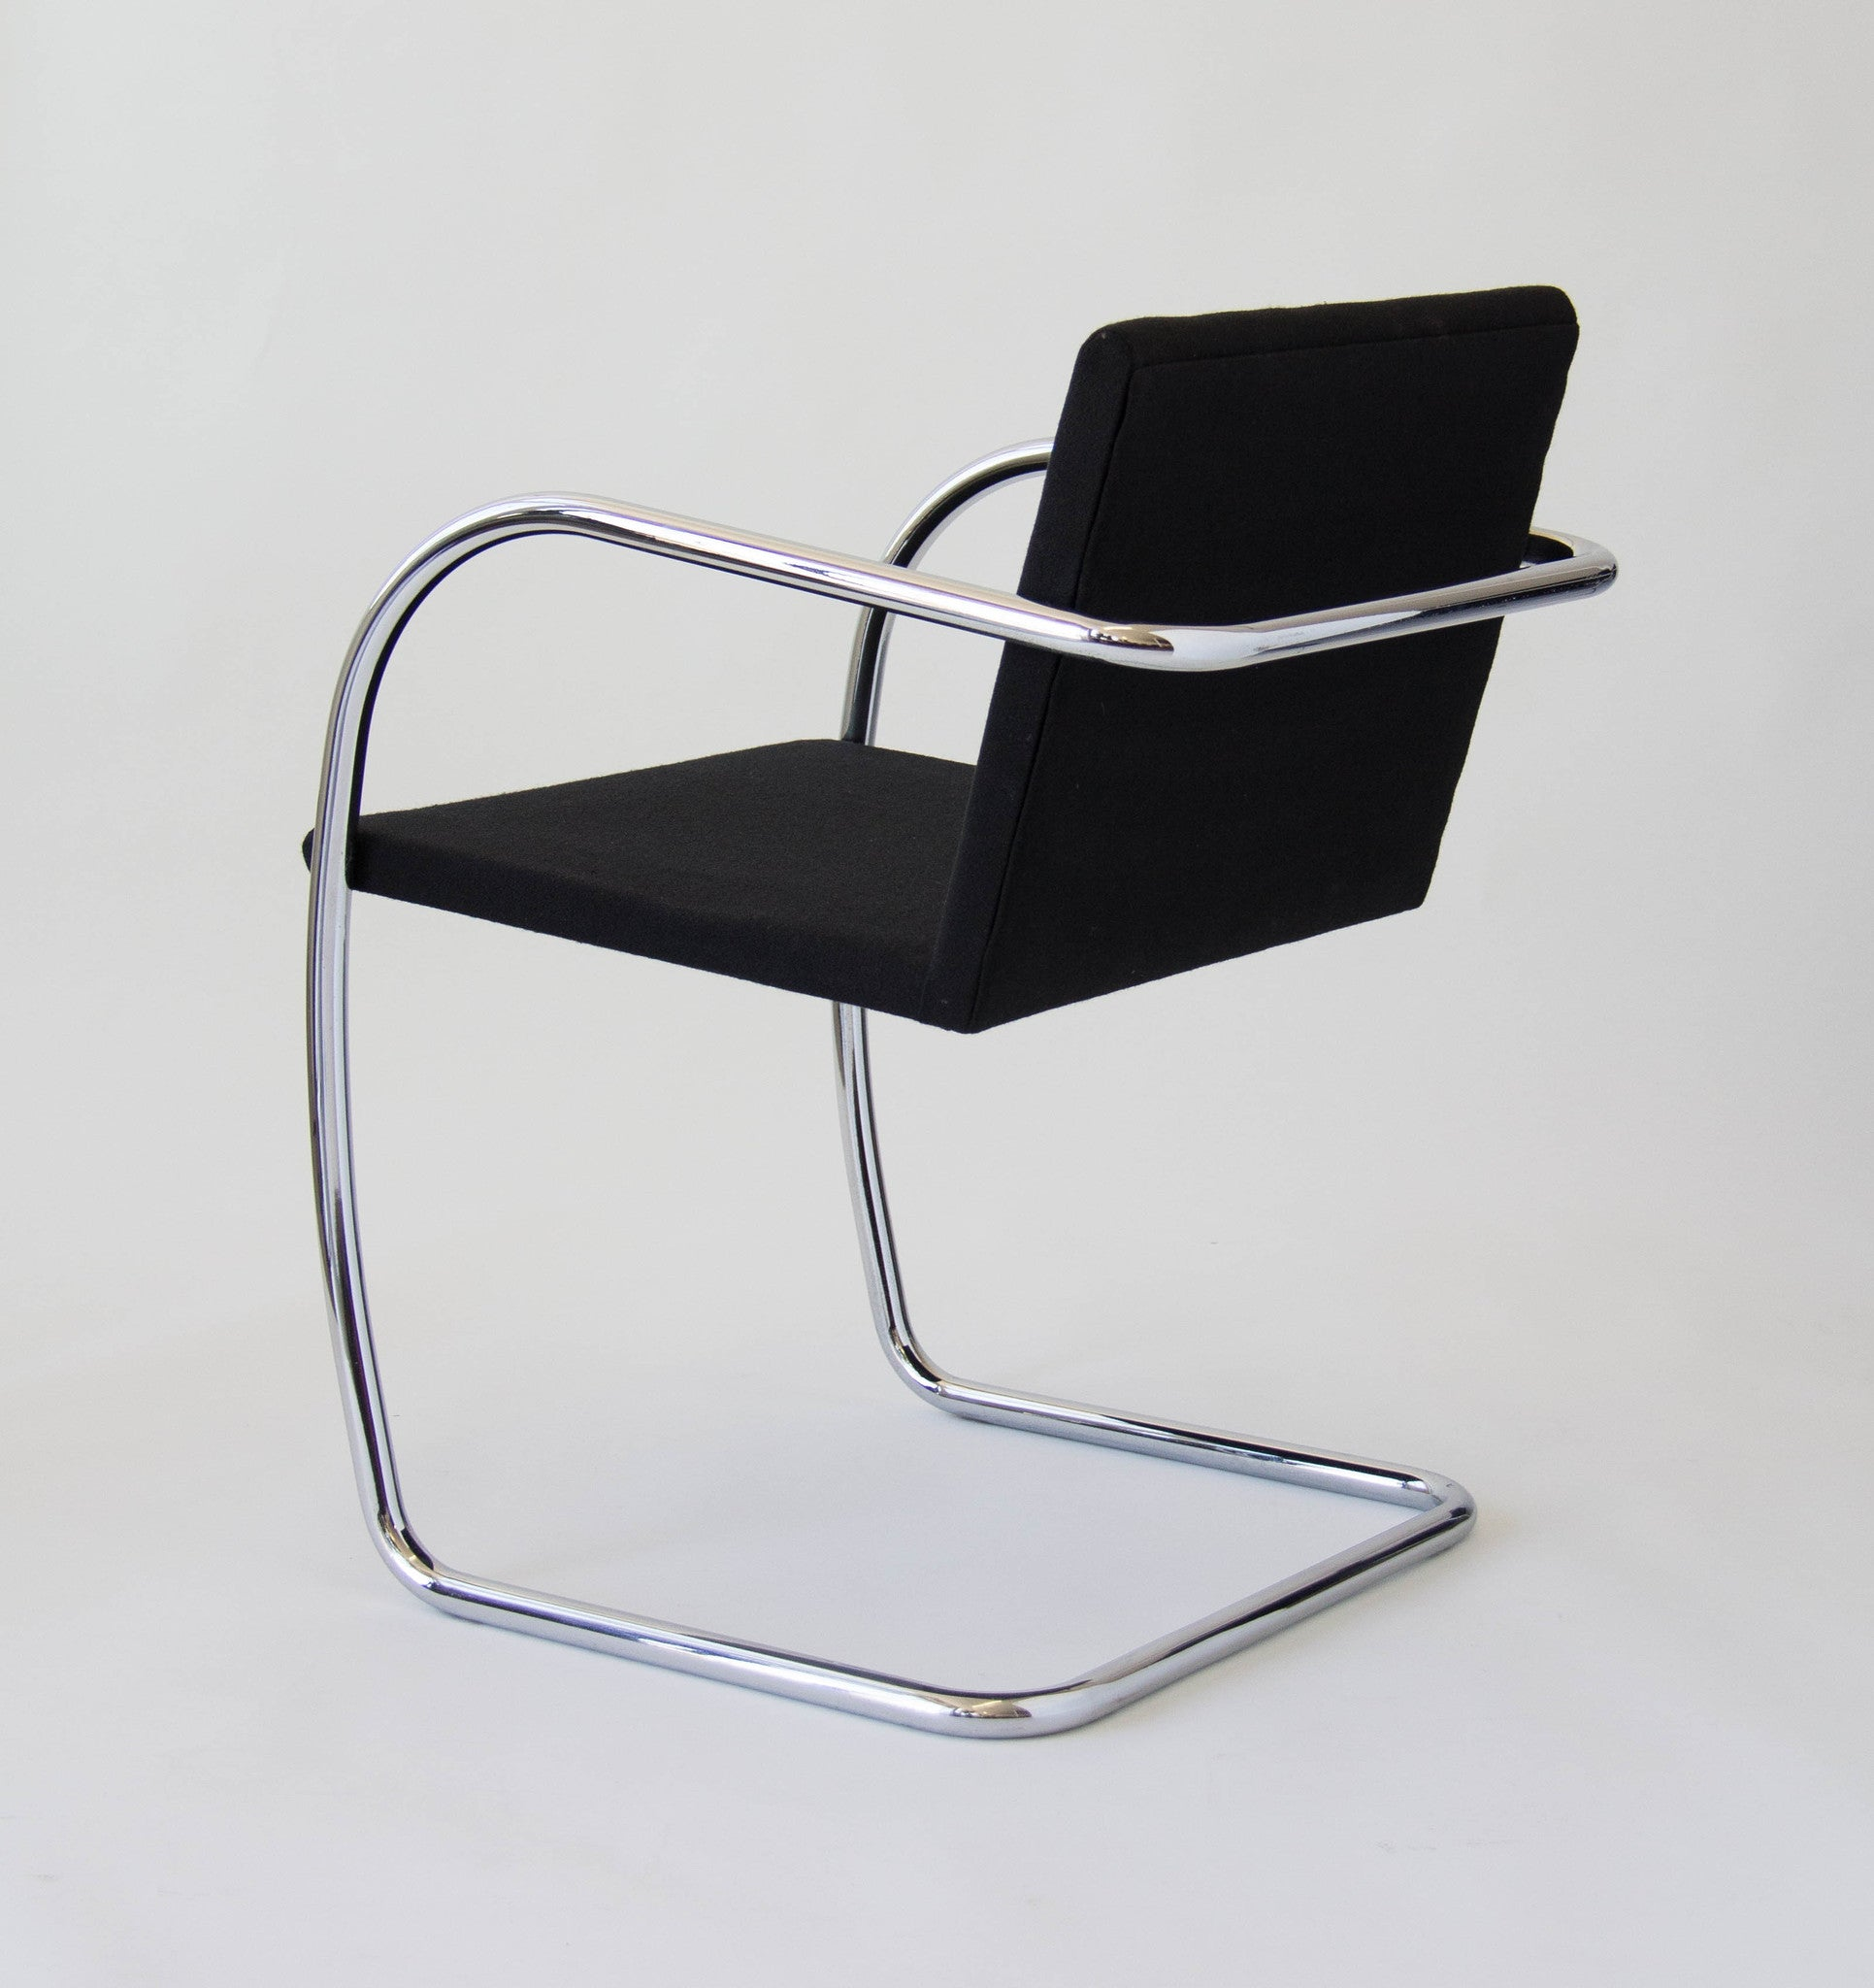 Tubular Brno Chairs by Mies van der Rohe for Knoll International